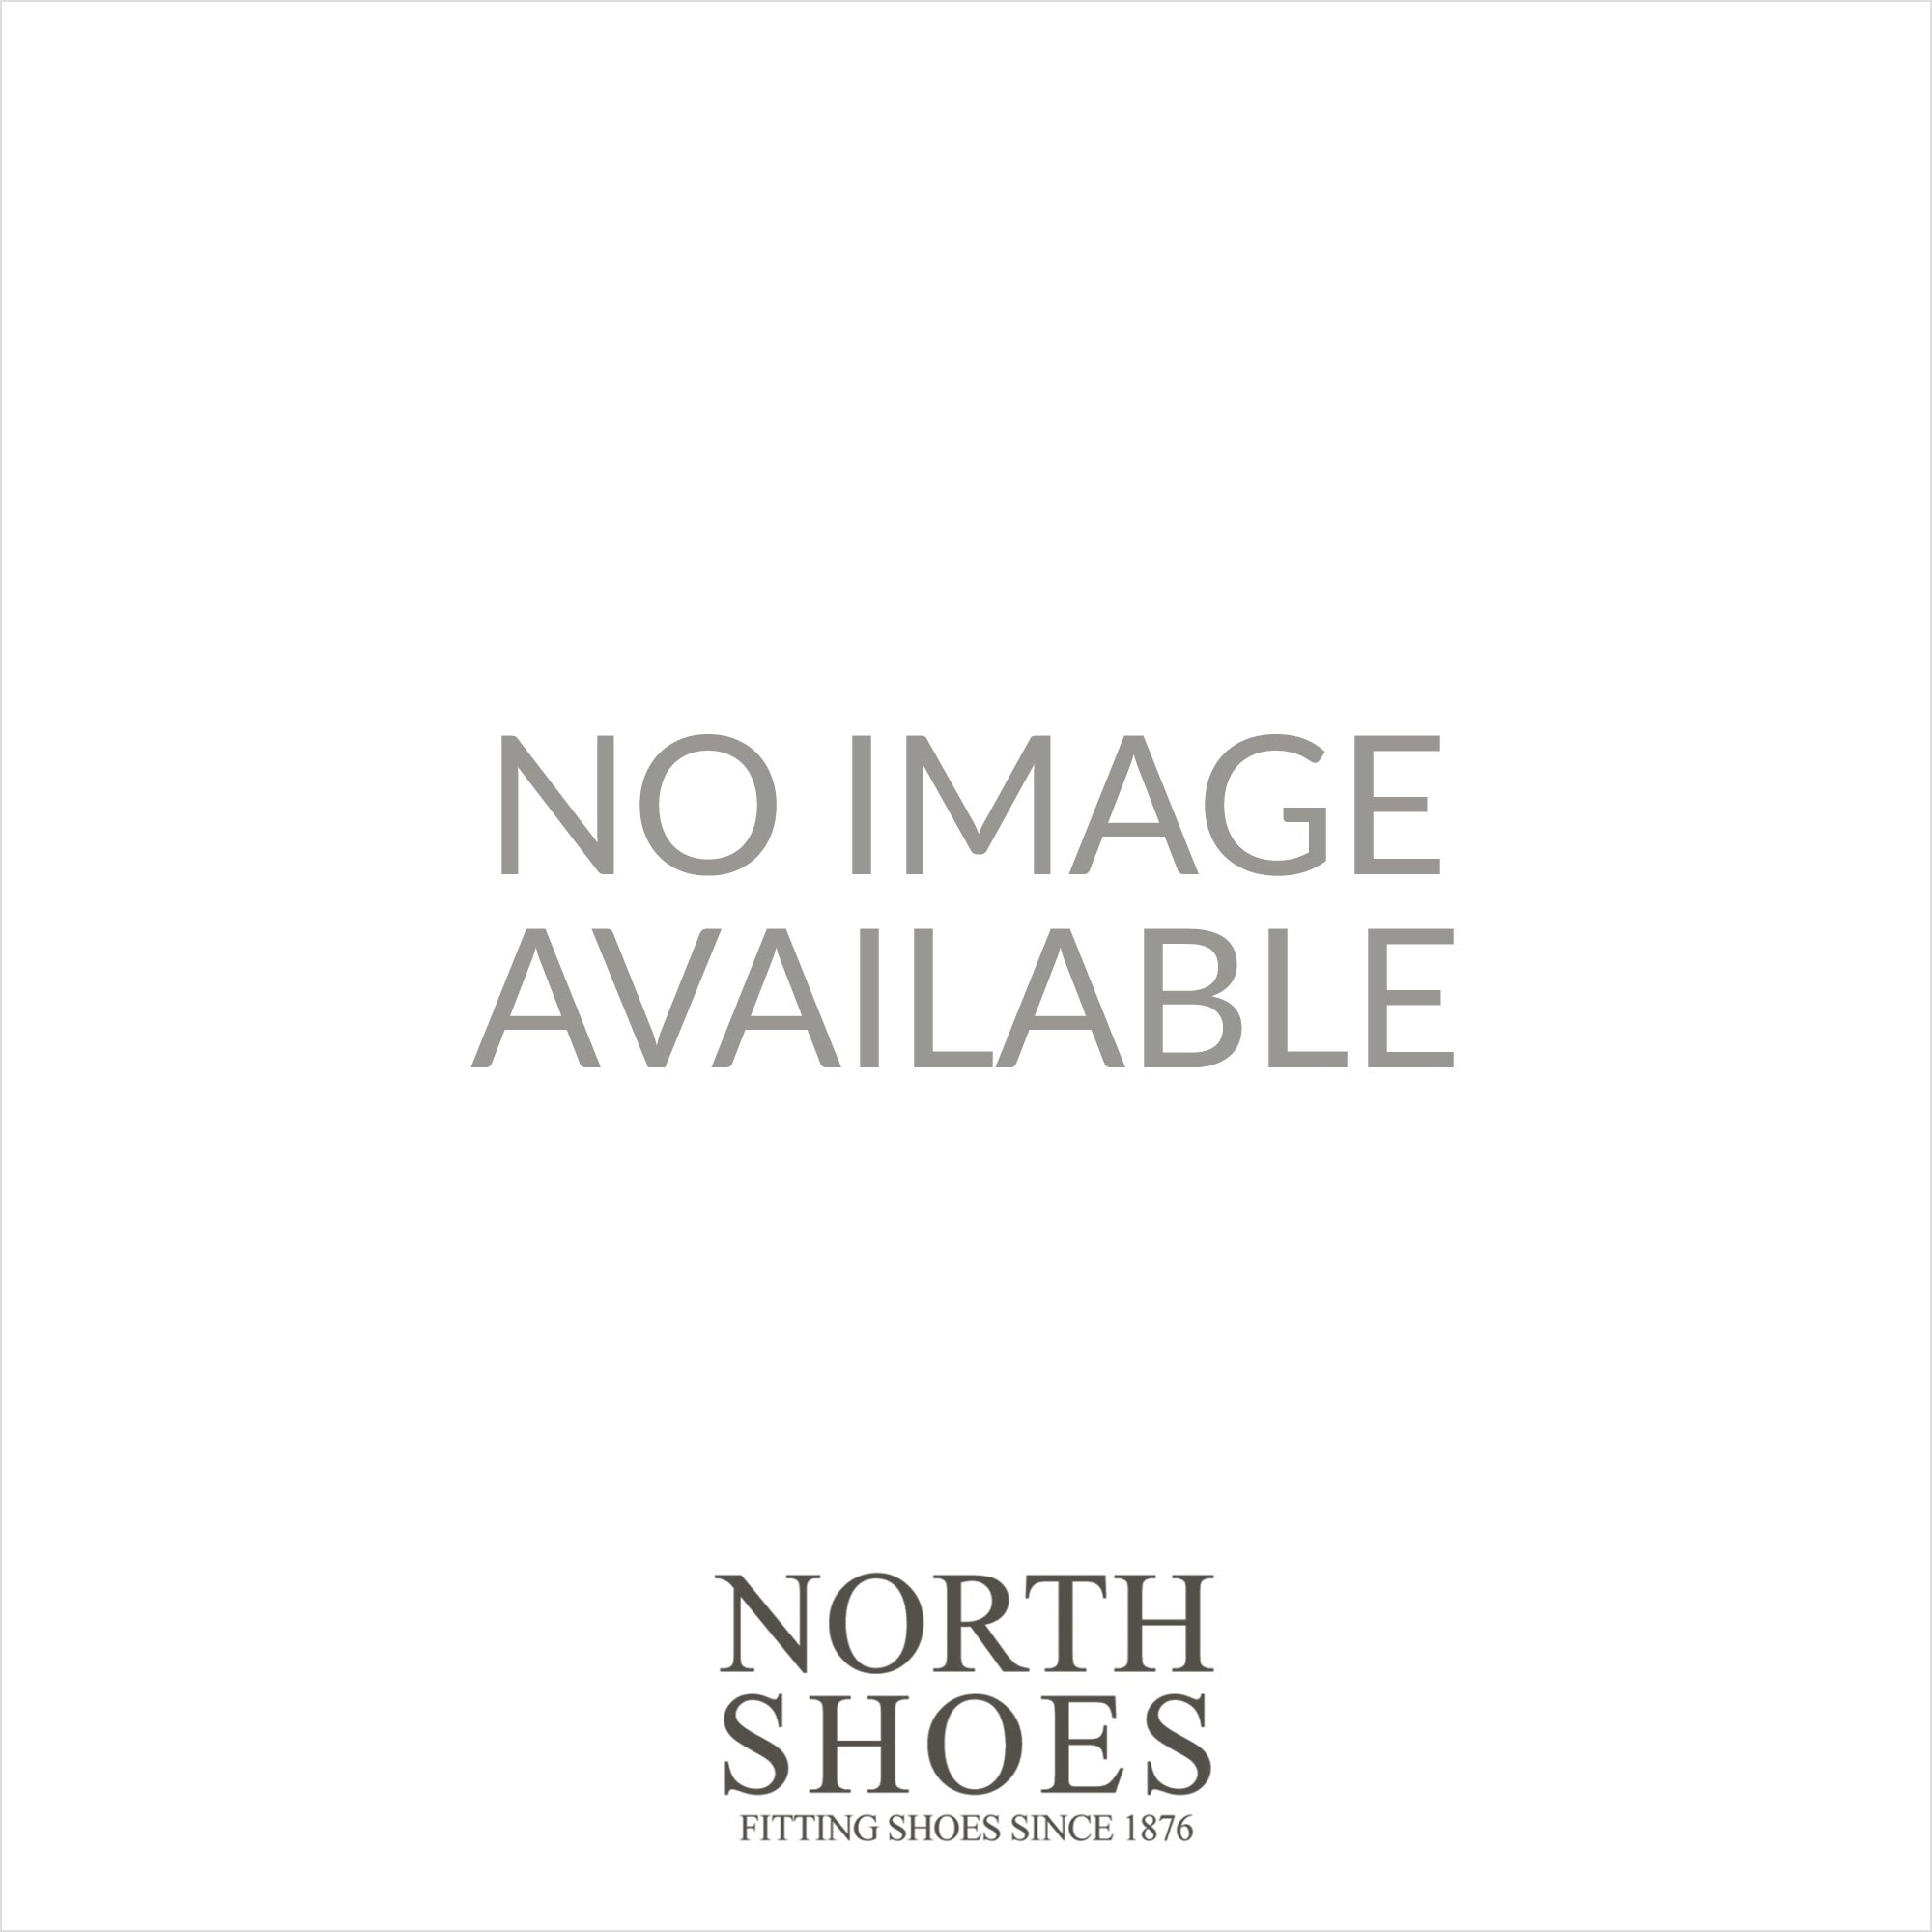 17ea09c5928251 Clarks Un Haven Strap Black Leather Womens Mary Jane Shoe - Clarks from  North Shoes UK